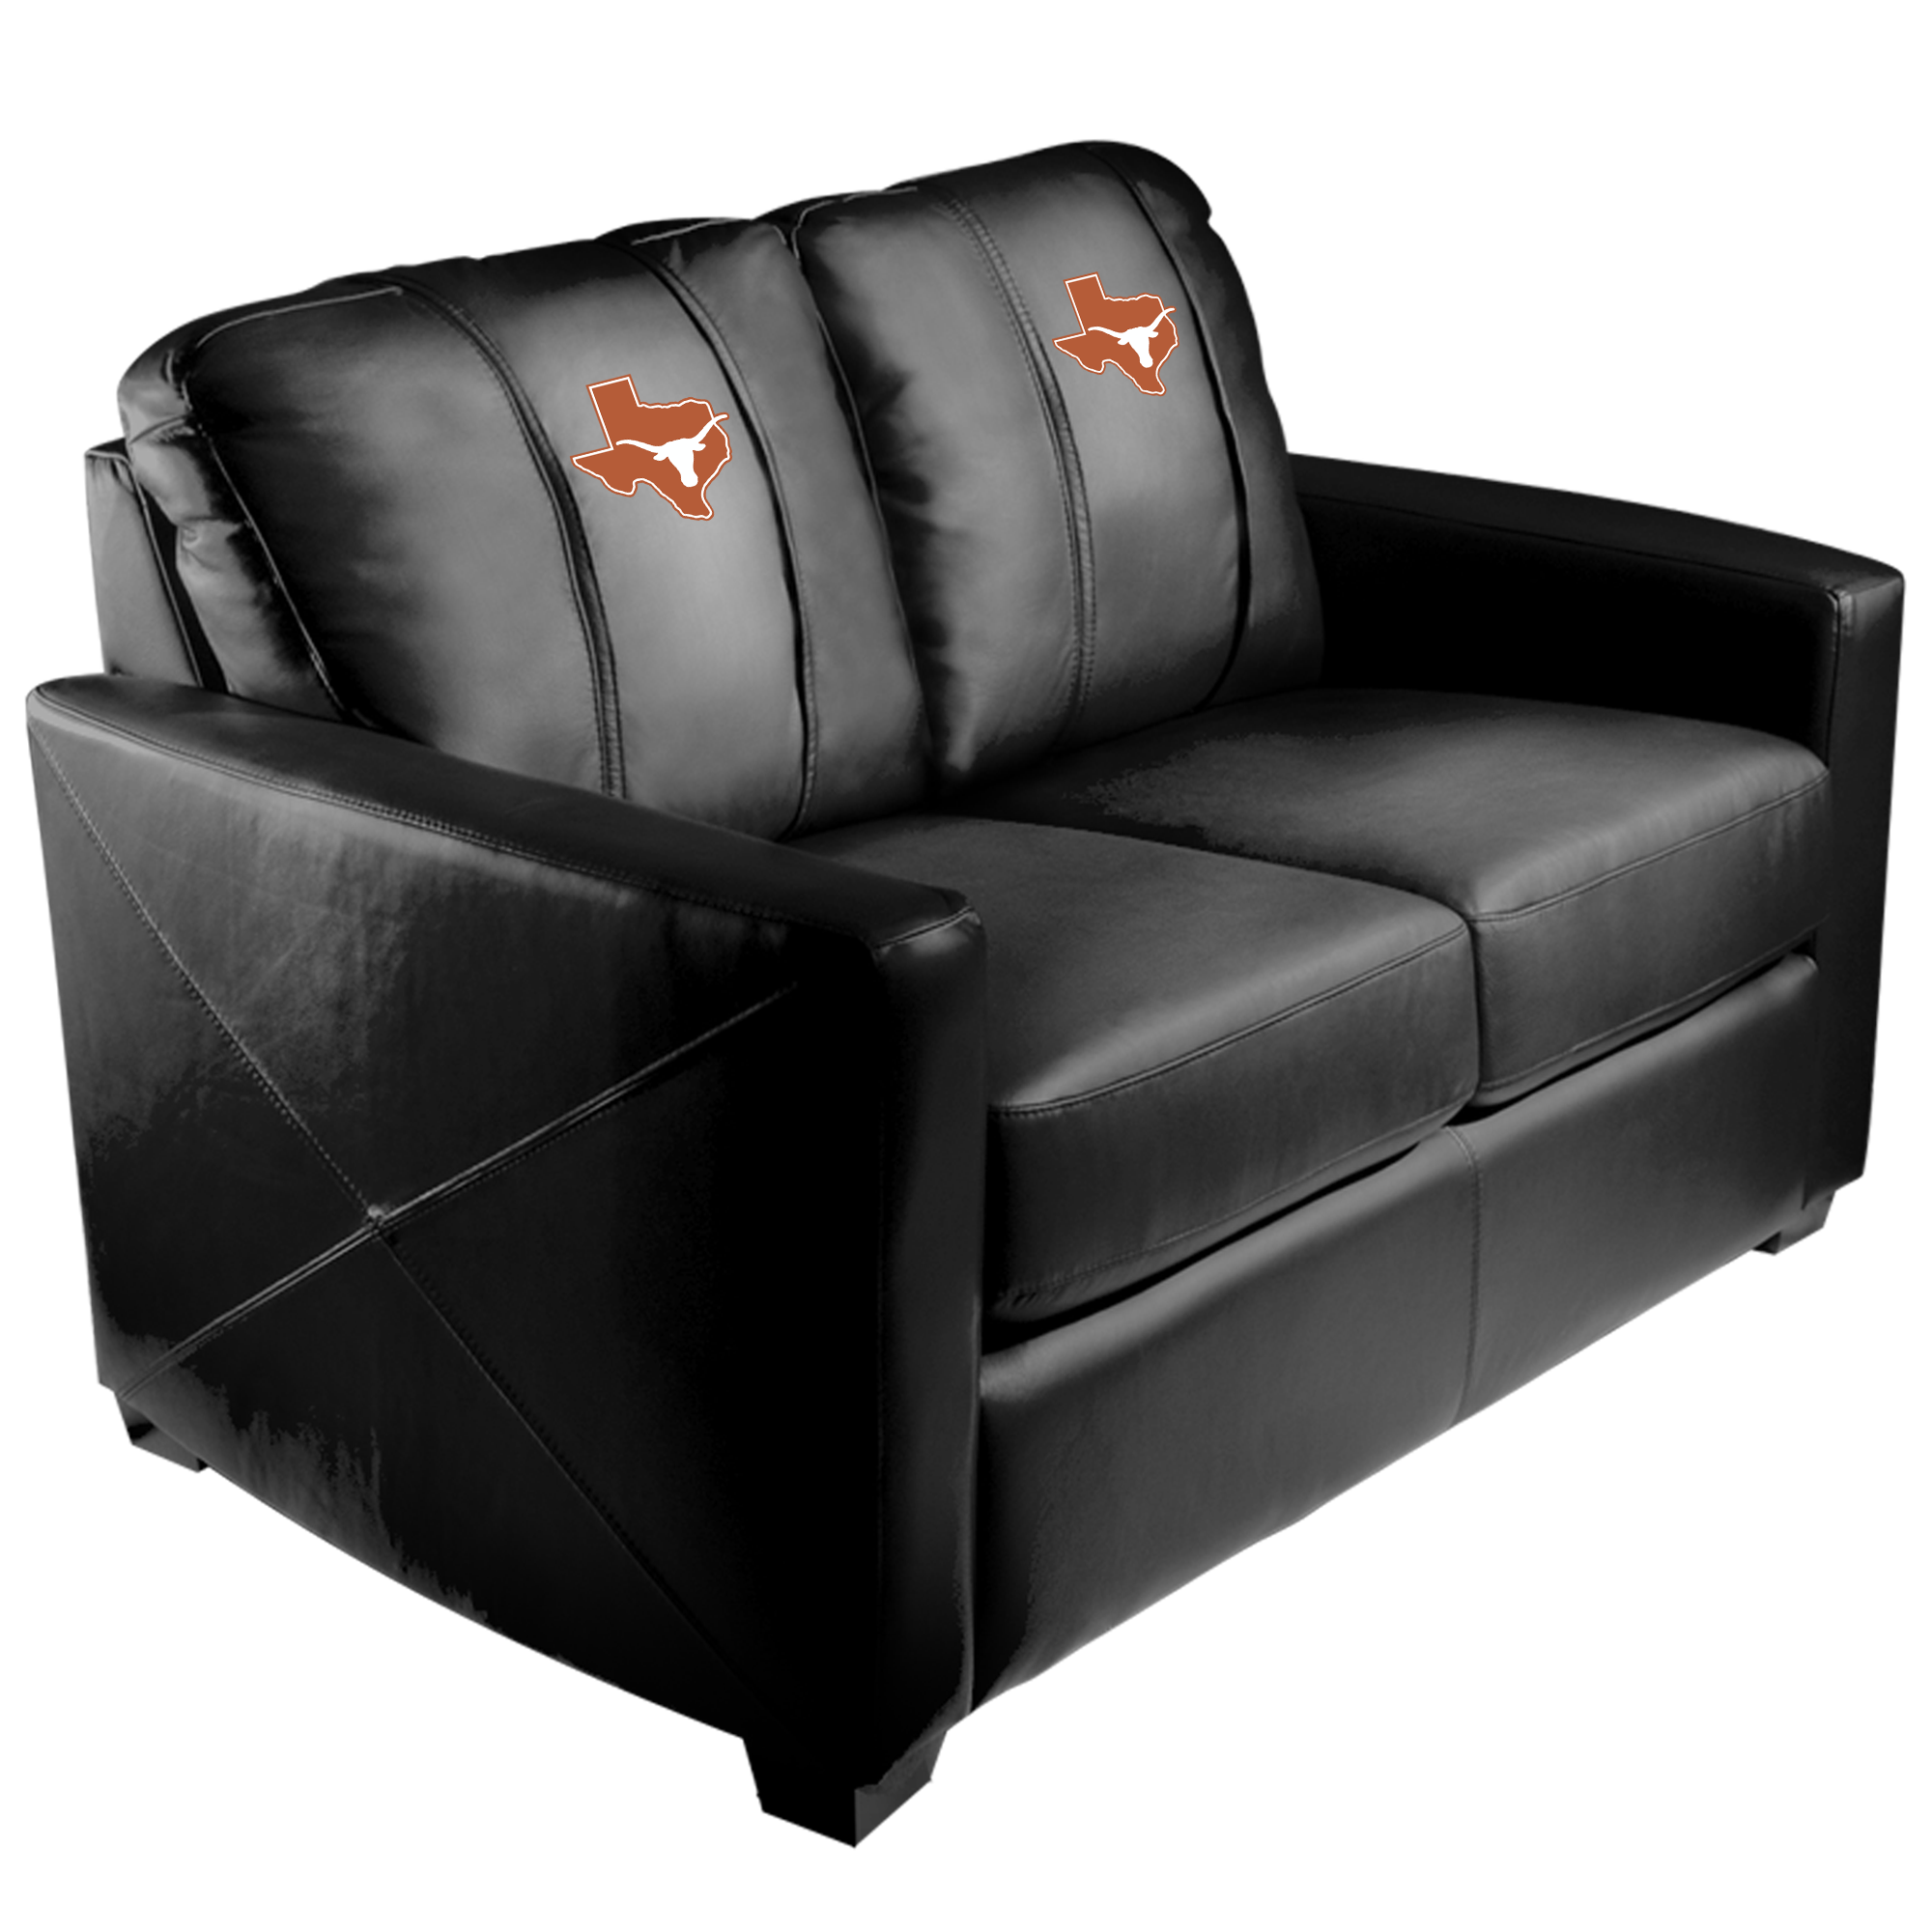 Silver Loveseat with Texas Longhorns Secondary